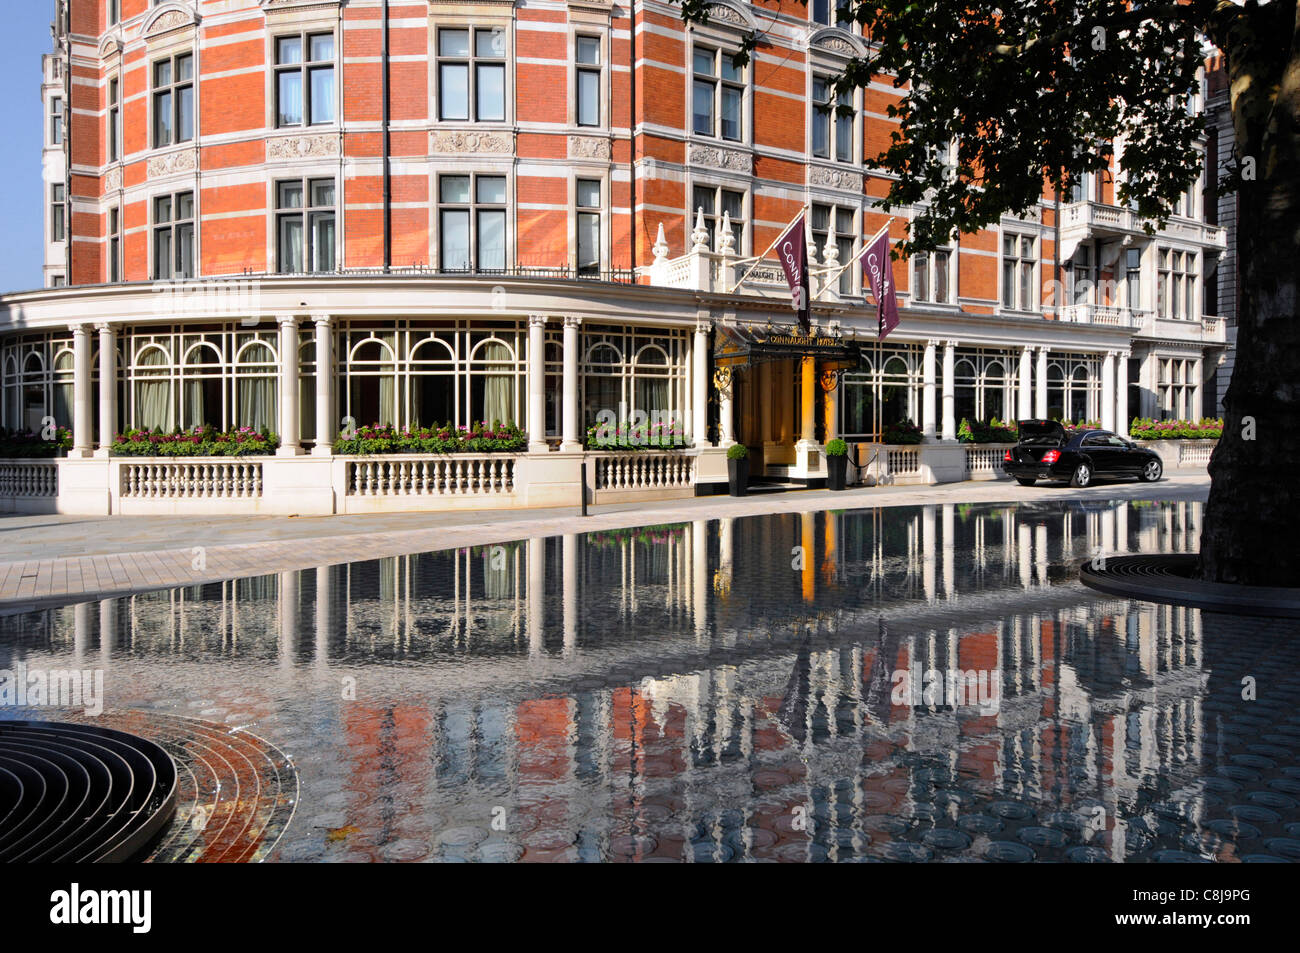 Front luxury five star Connaught Hotel exterior reflection Carlos Place Mayfair 'Silence' raised water feature - Stock Image